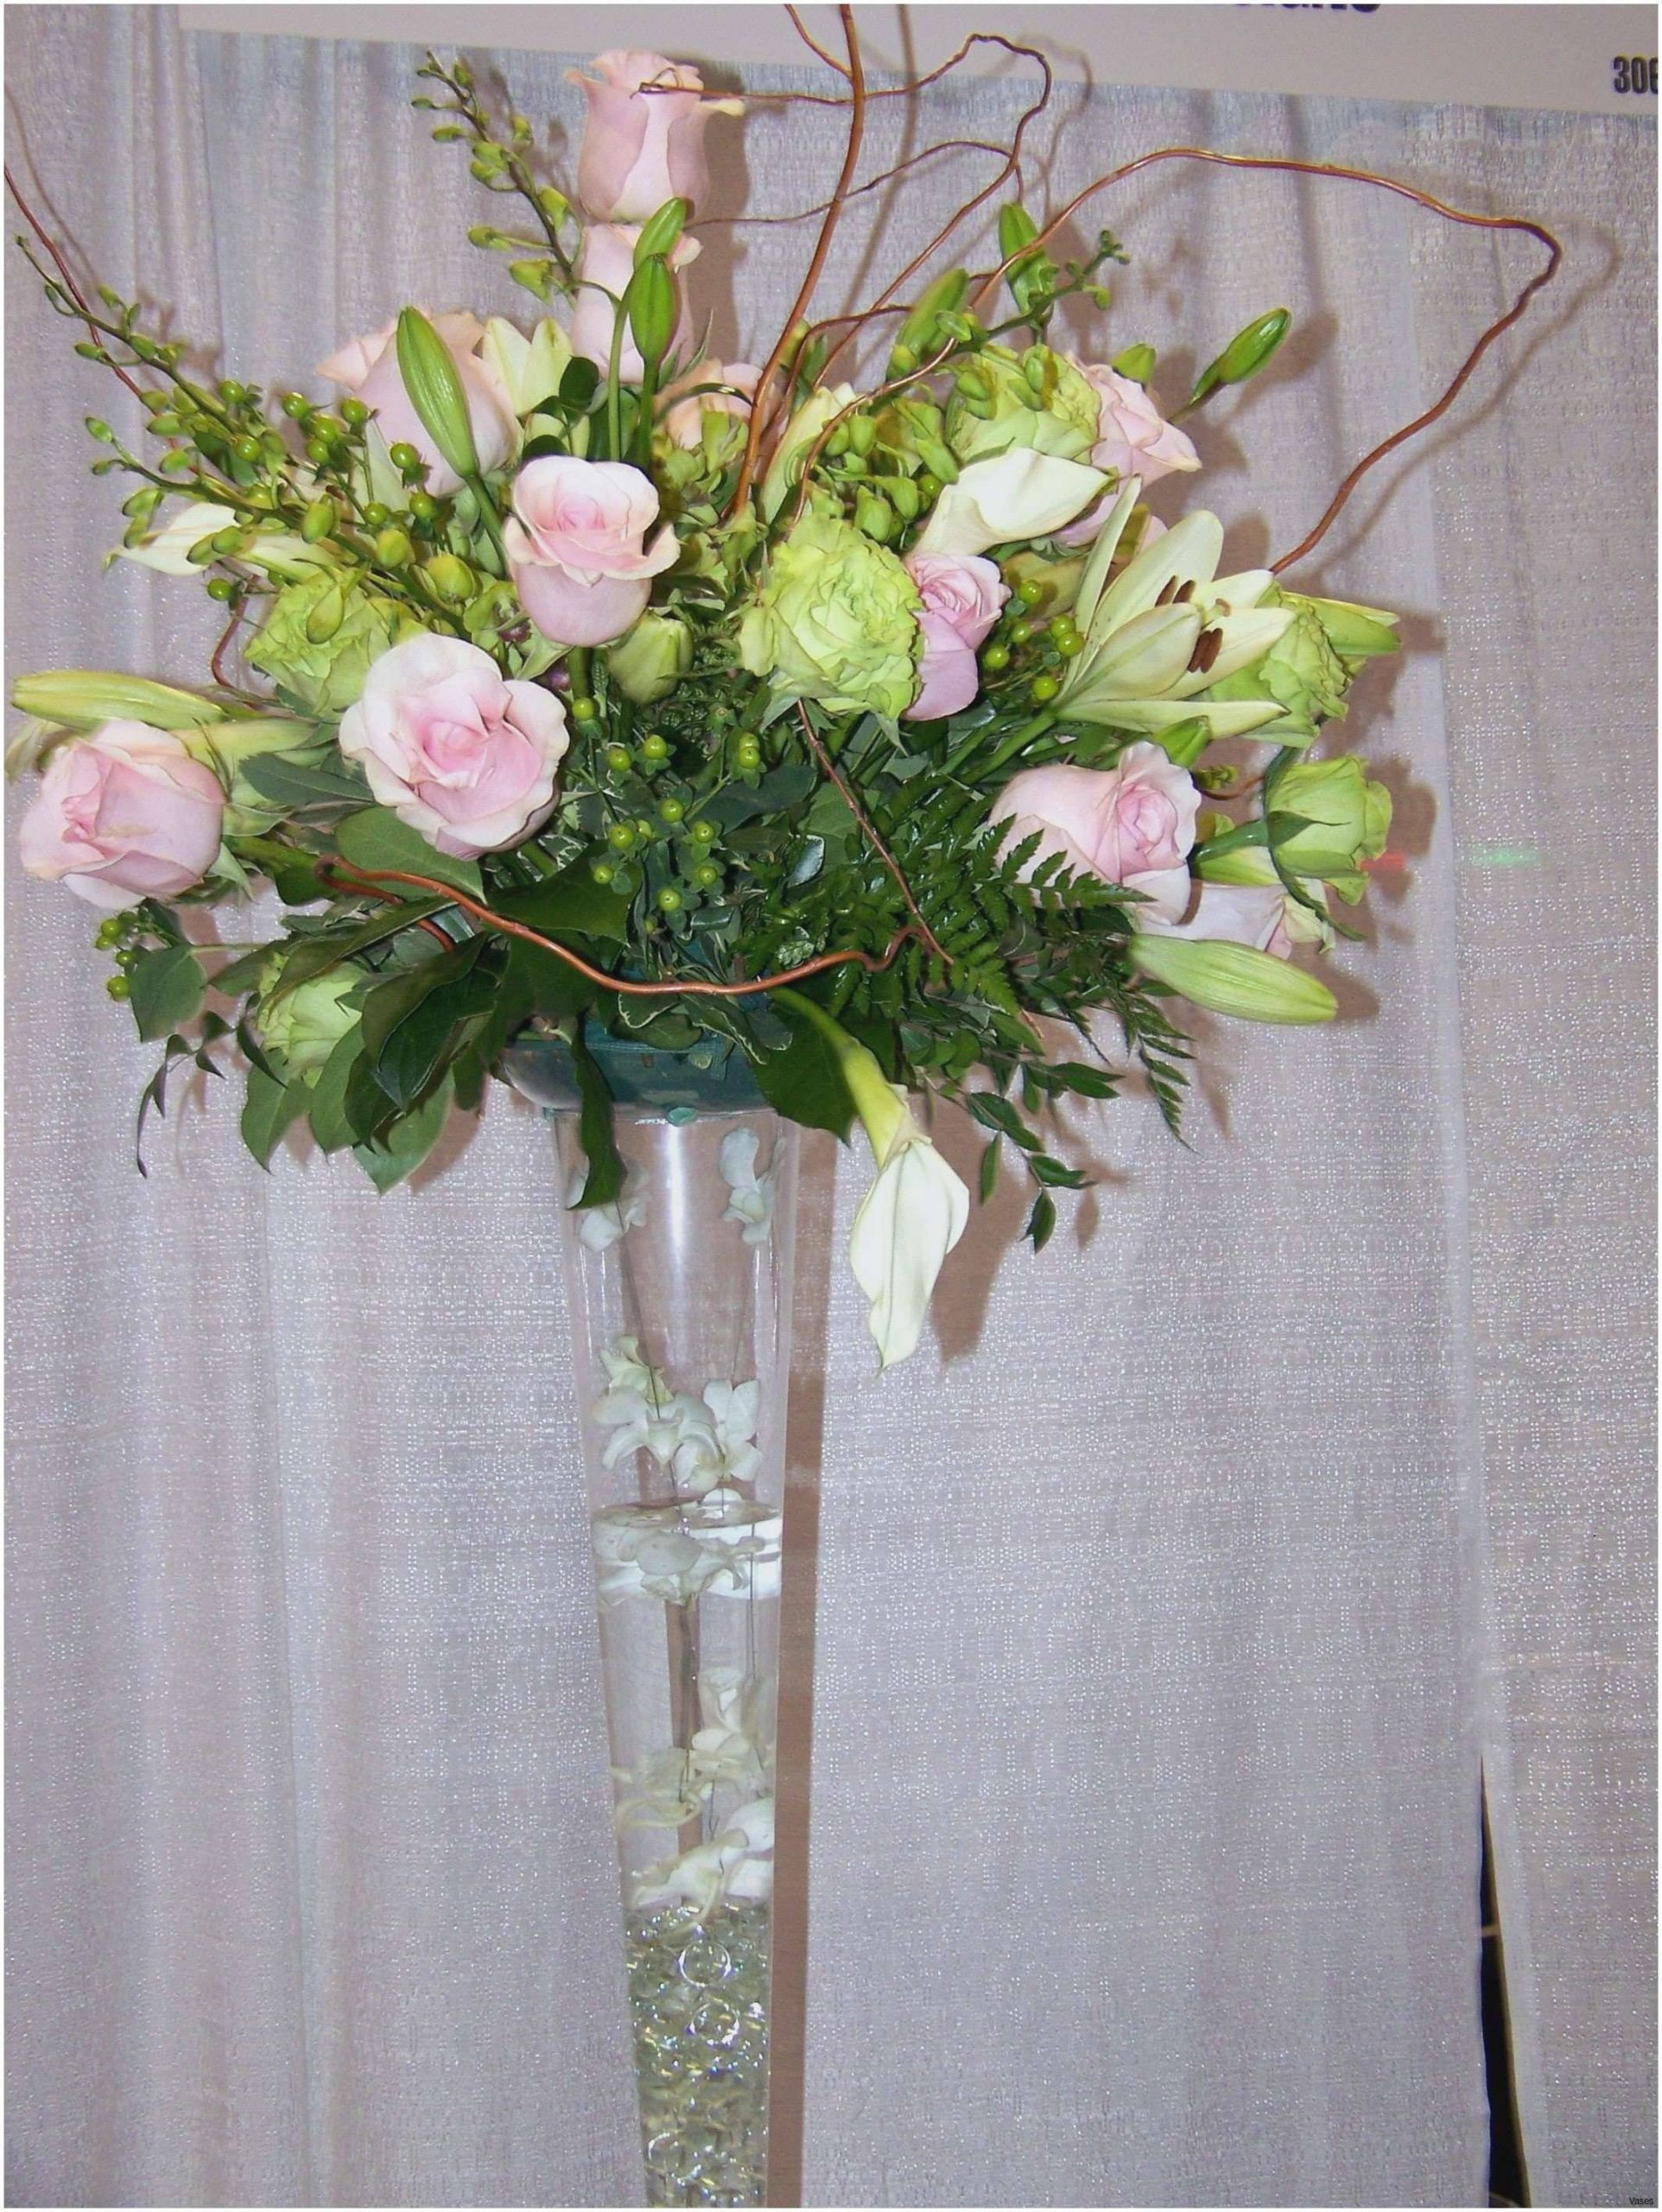 tall vase table decorations of garden party decorations the perfect ac2a2ec286a ac2a2ac28be280a0ac285a 0d mundo kids with regard to garden party decorations the perfect ac2a2ec286a a